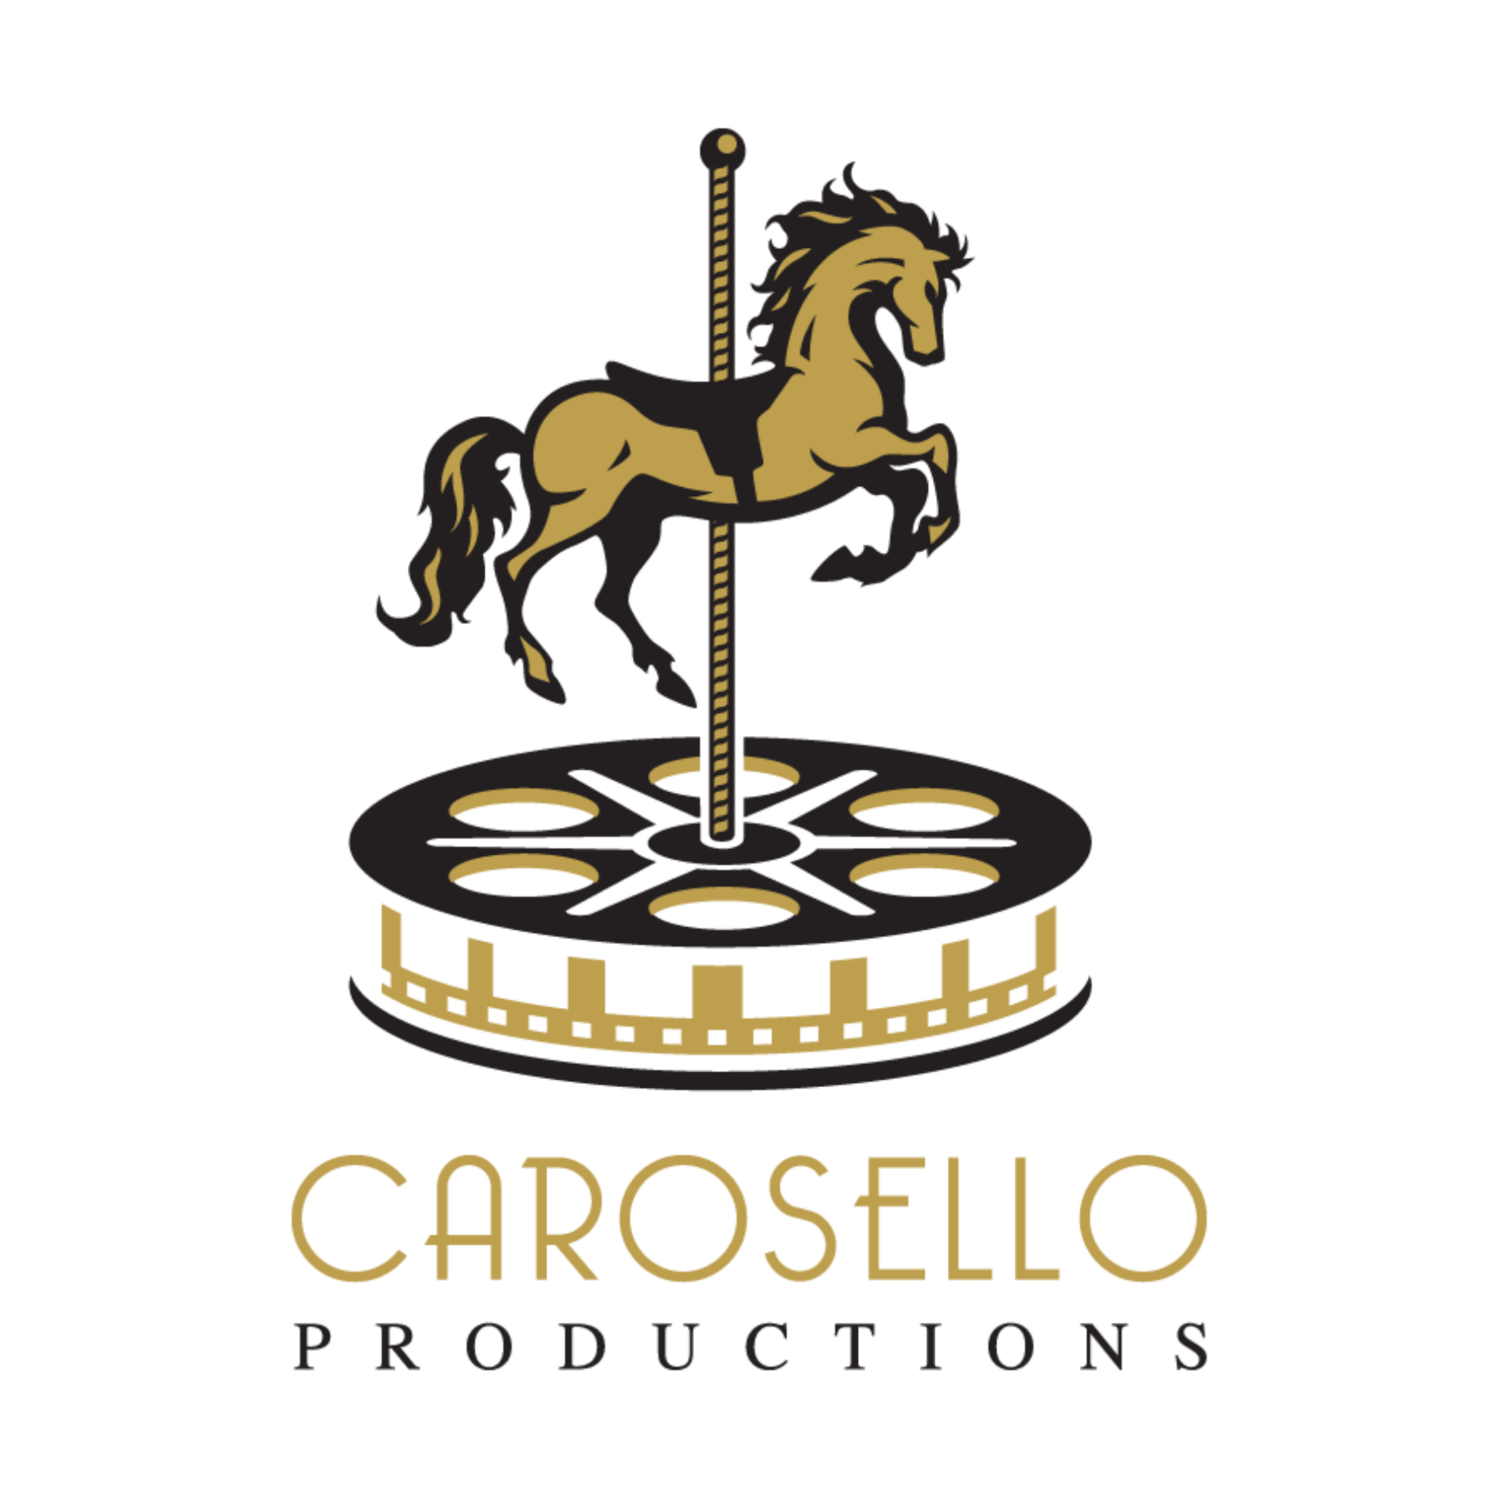 Carosello Productions